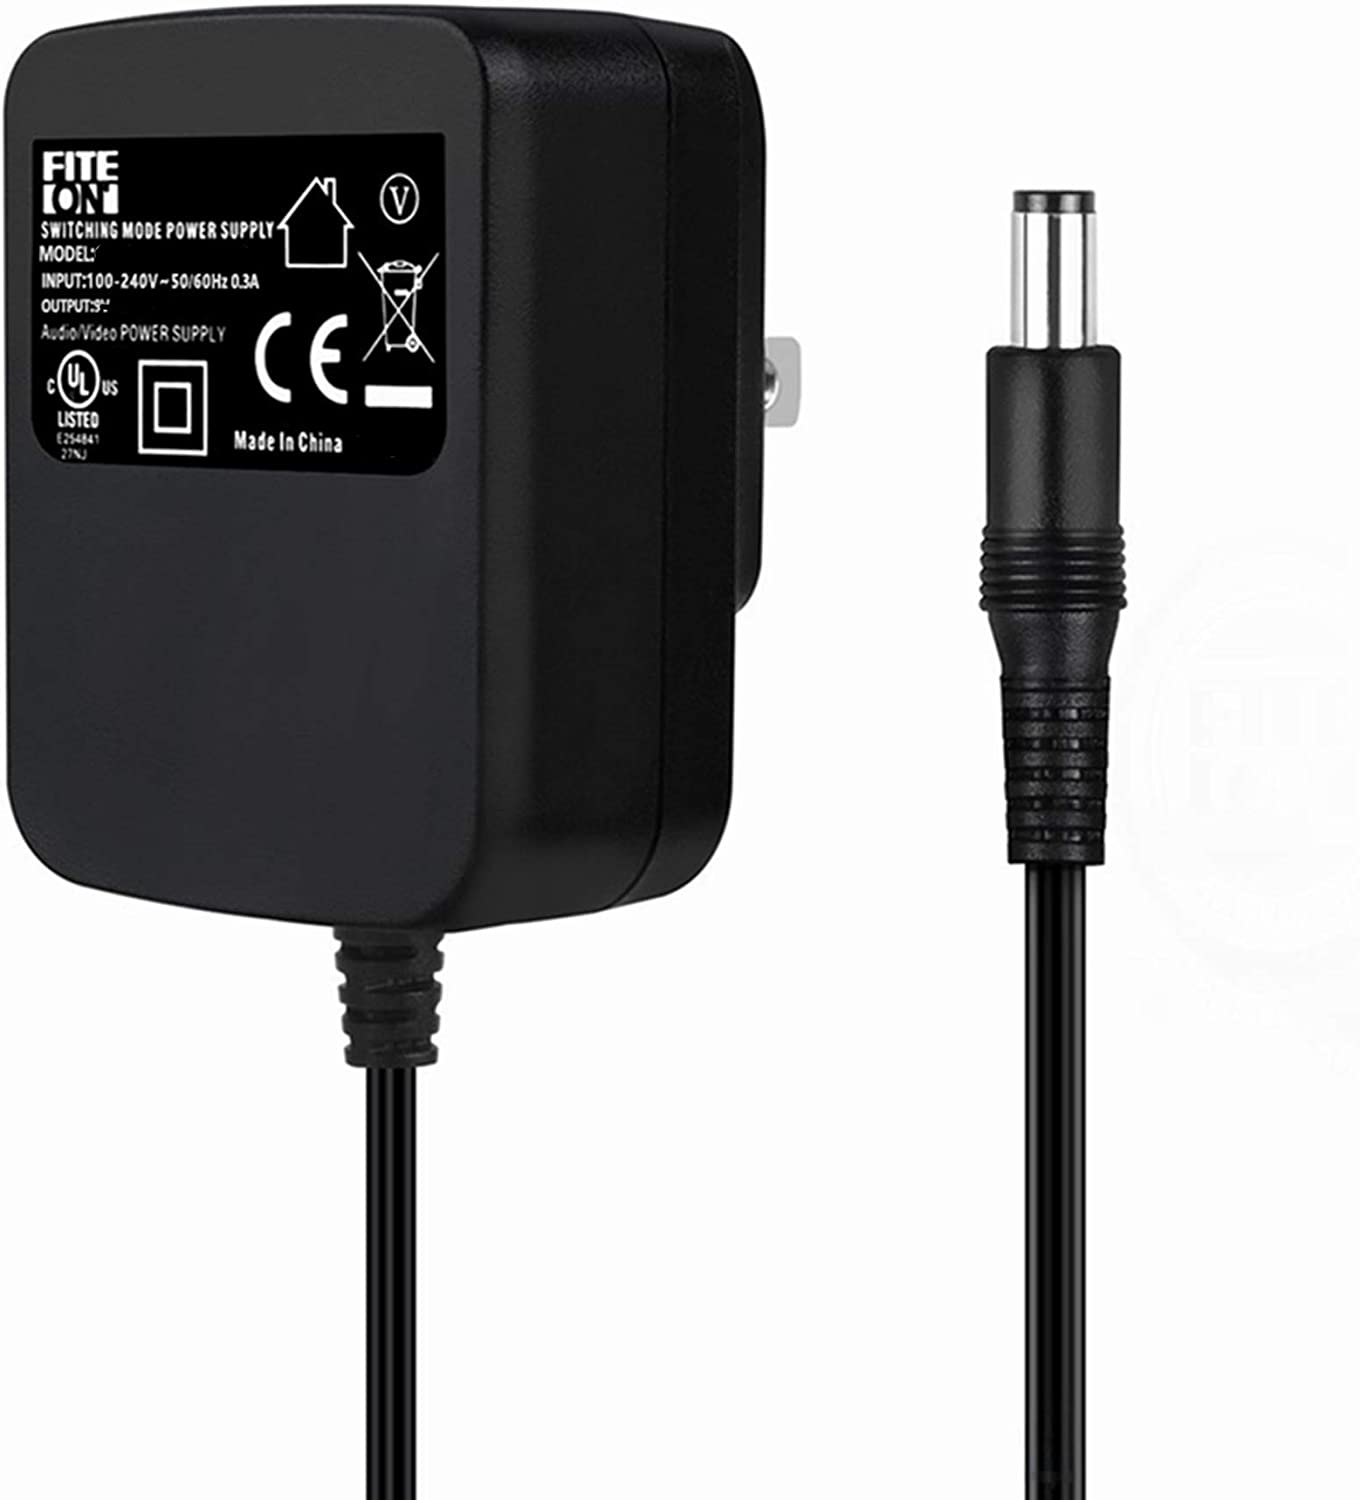 5 ☆ popular FITE ON UL Our shop OFFers the best service Listed AC DC Casio CTK-480 CTK-51 for CTK-515 Adapter